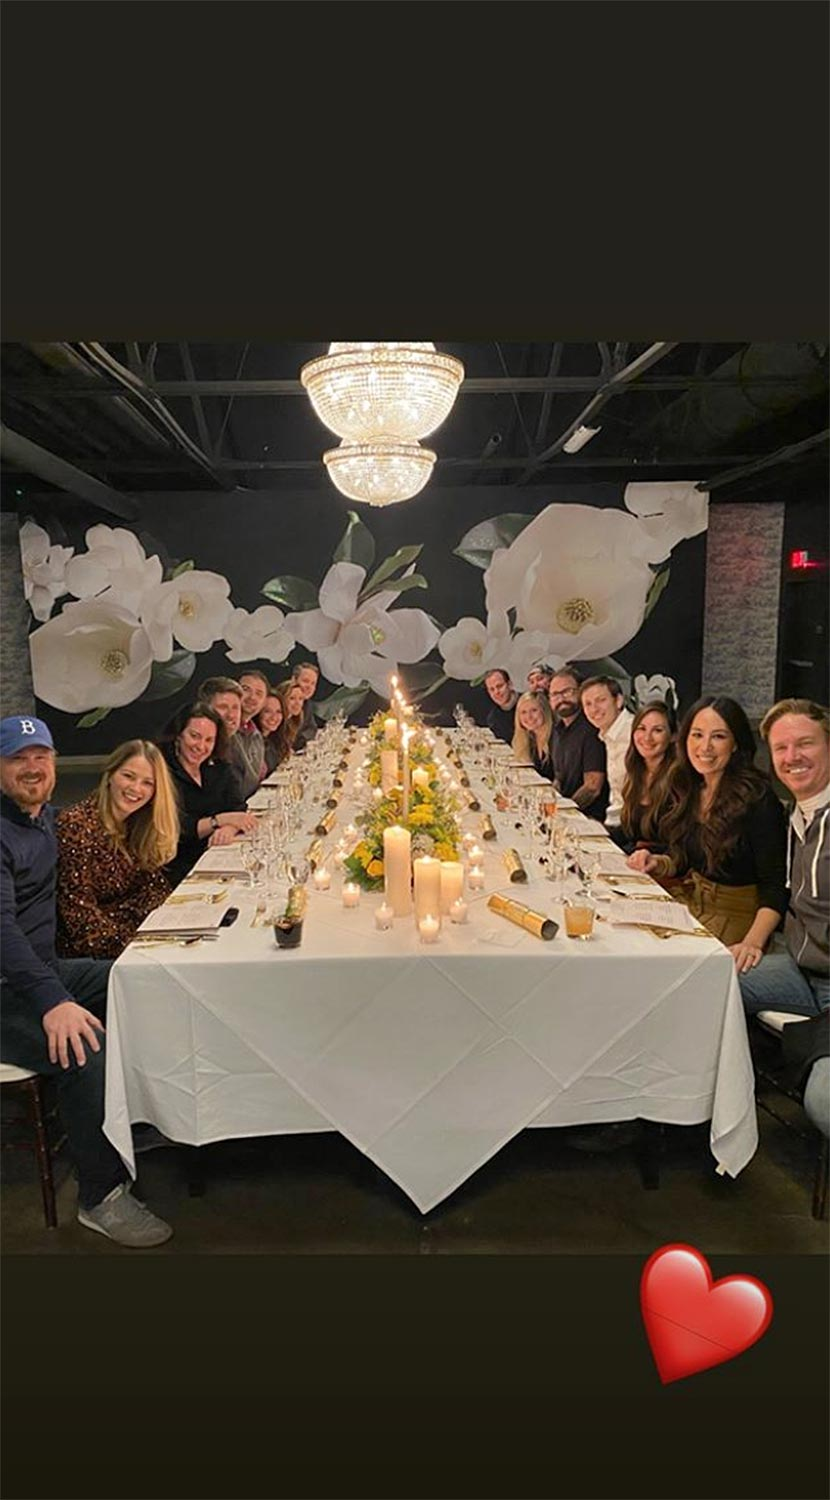 joanna gaines new year's